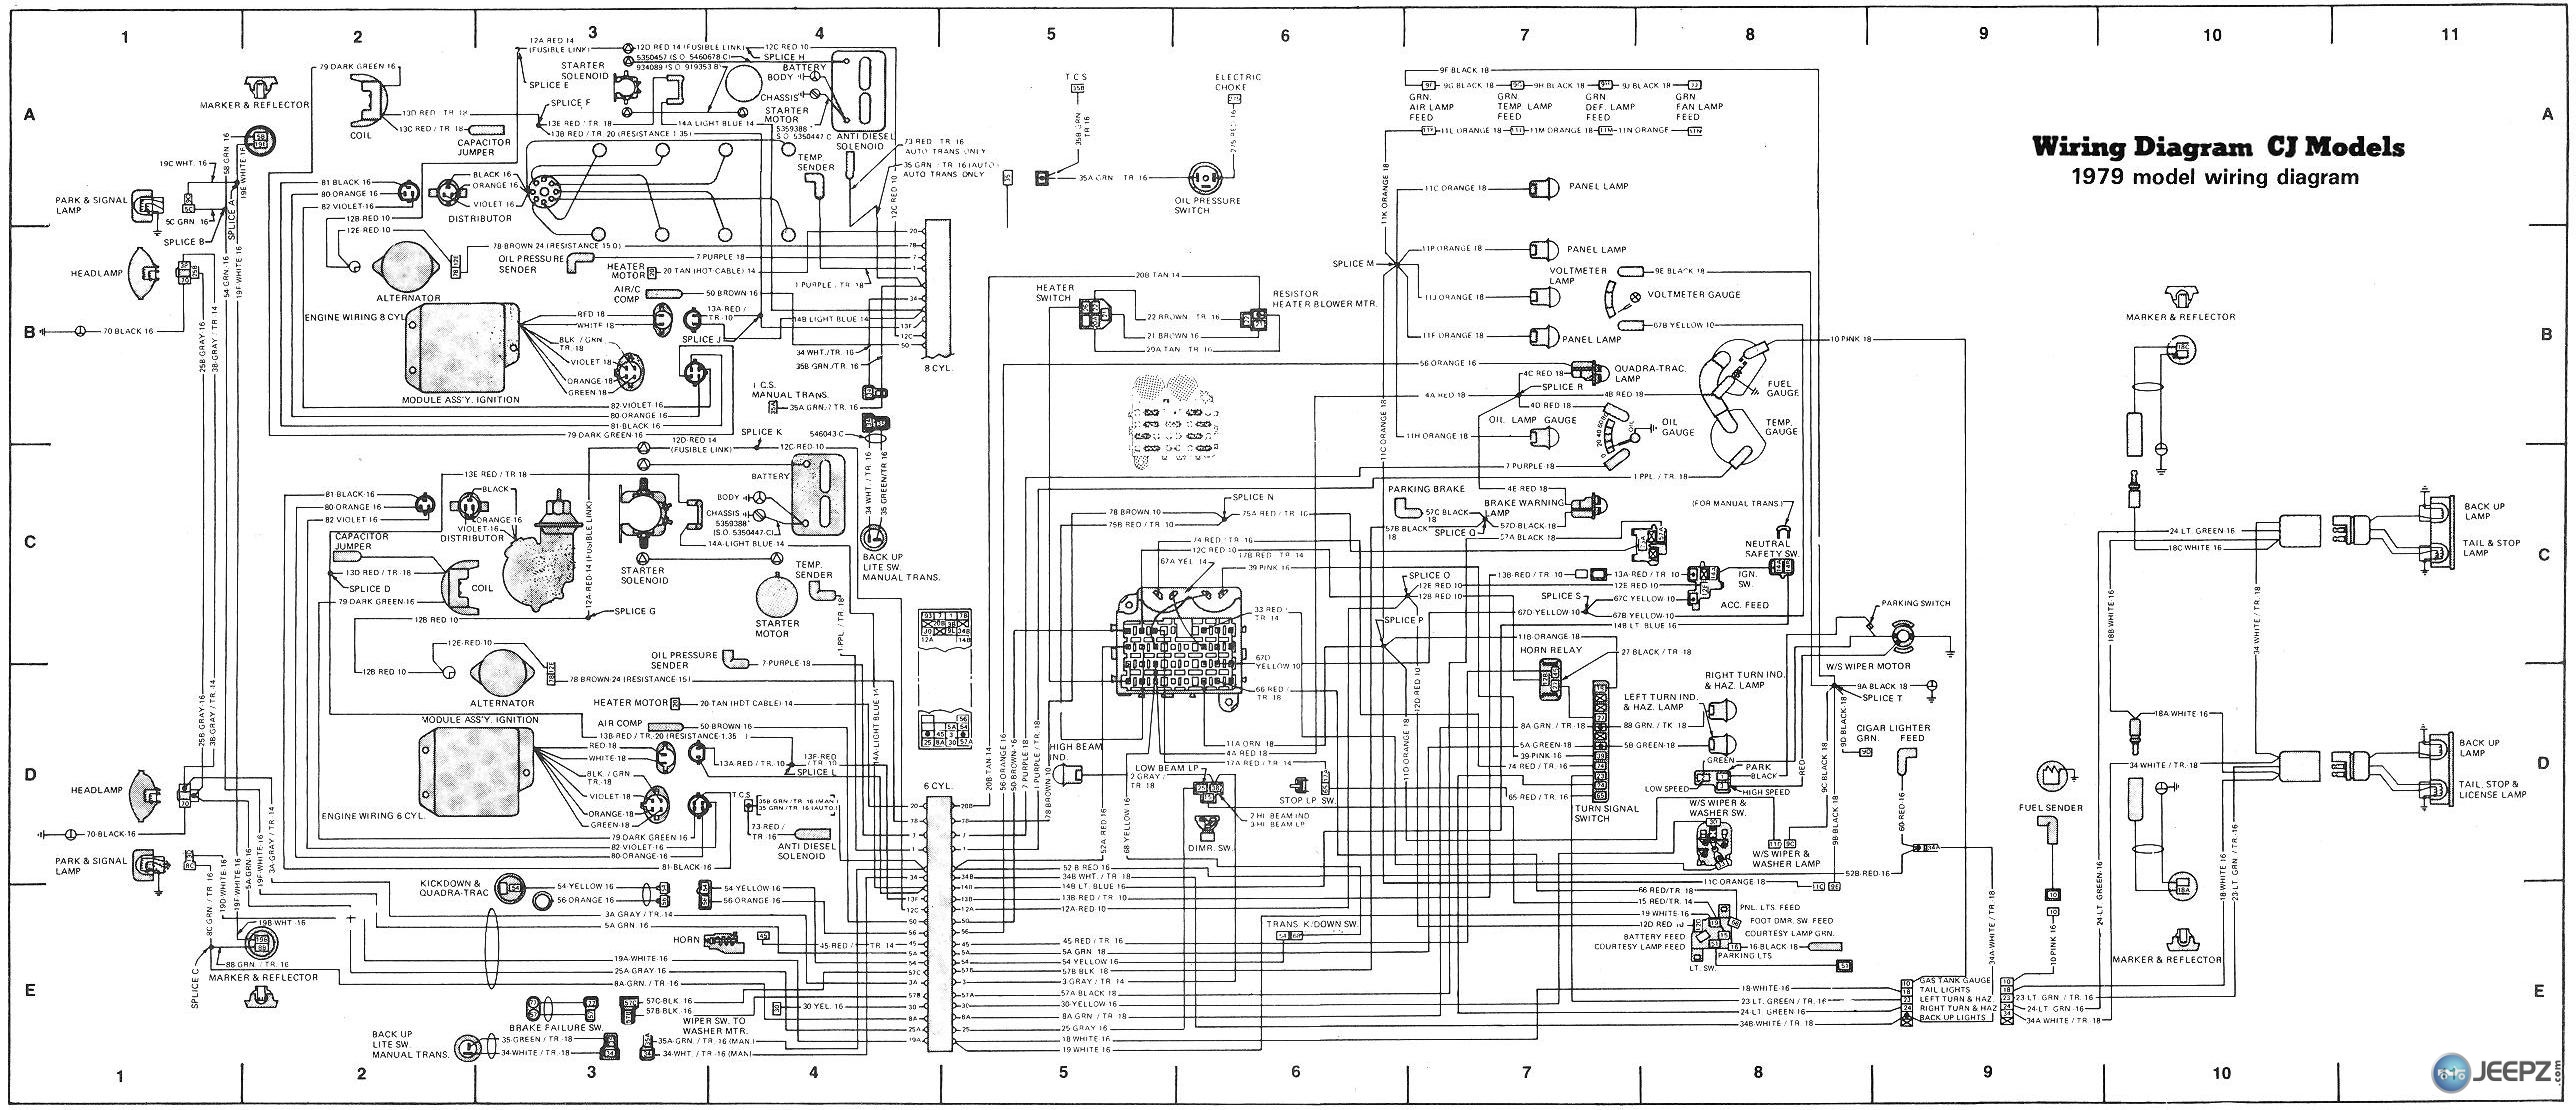 2748d1243285147 cj headlight wiring colors cj wiring diagram 1979 cj headlight wiring colors jeep yj dimmer switch wiring diagram at edmiracle.co